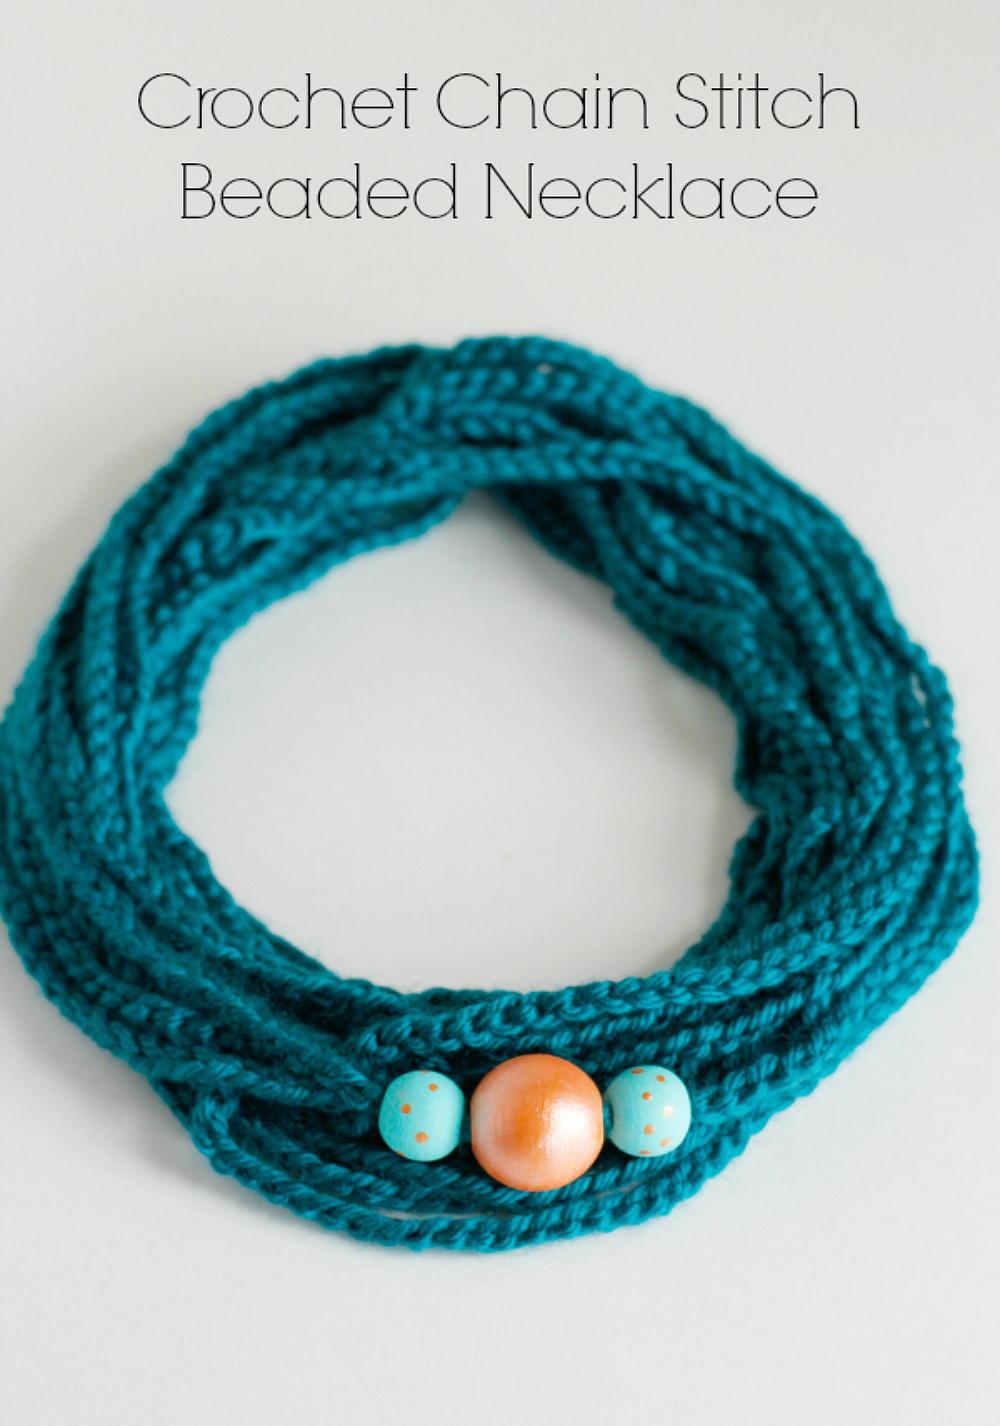 Crochet Chain Stitch Beaded Necklaces